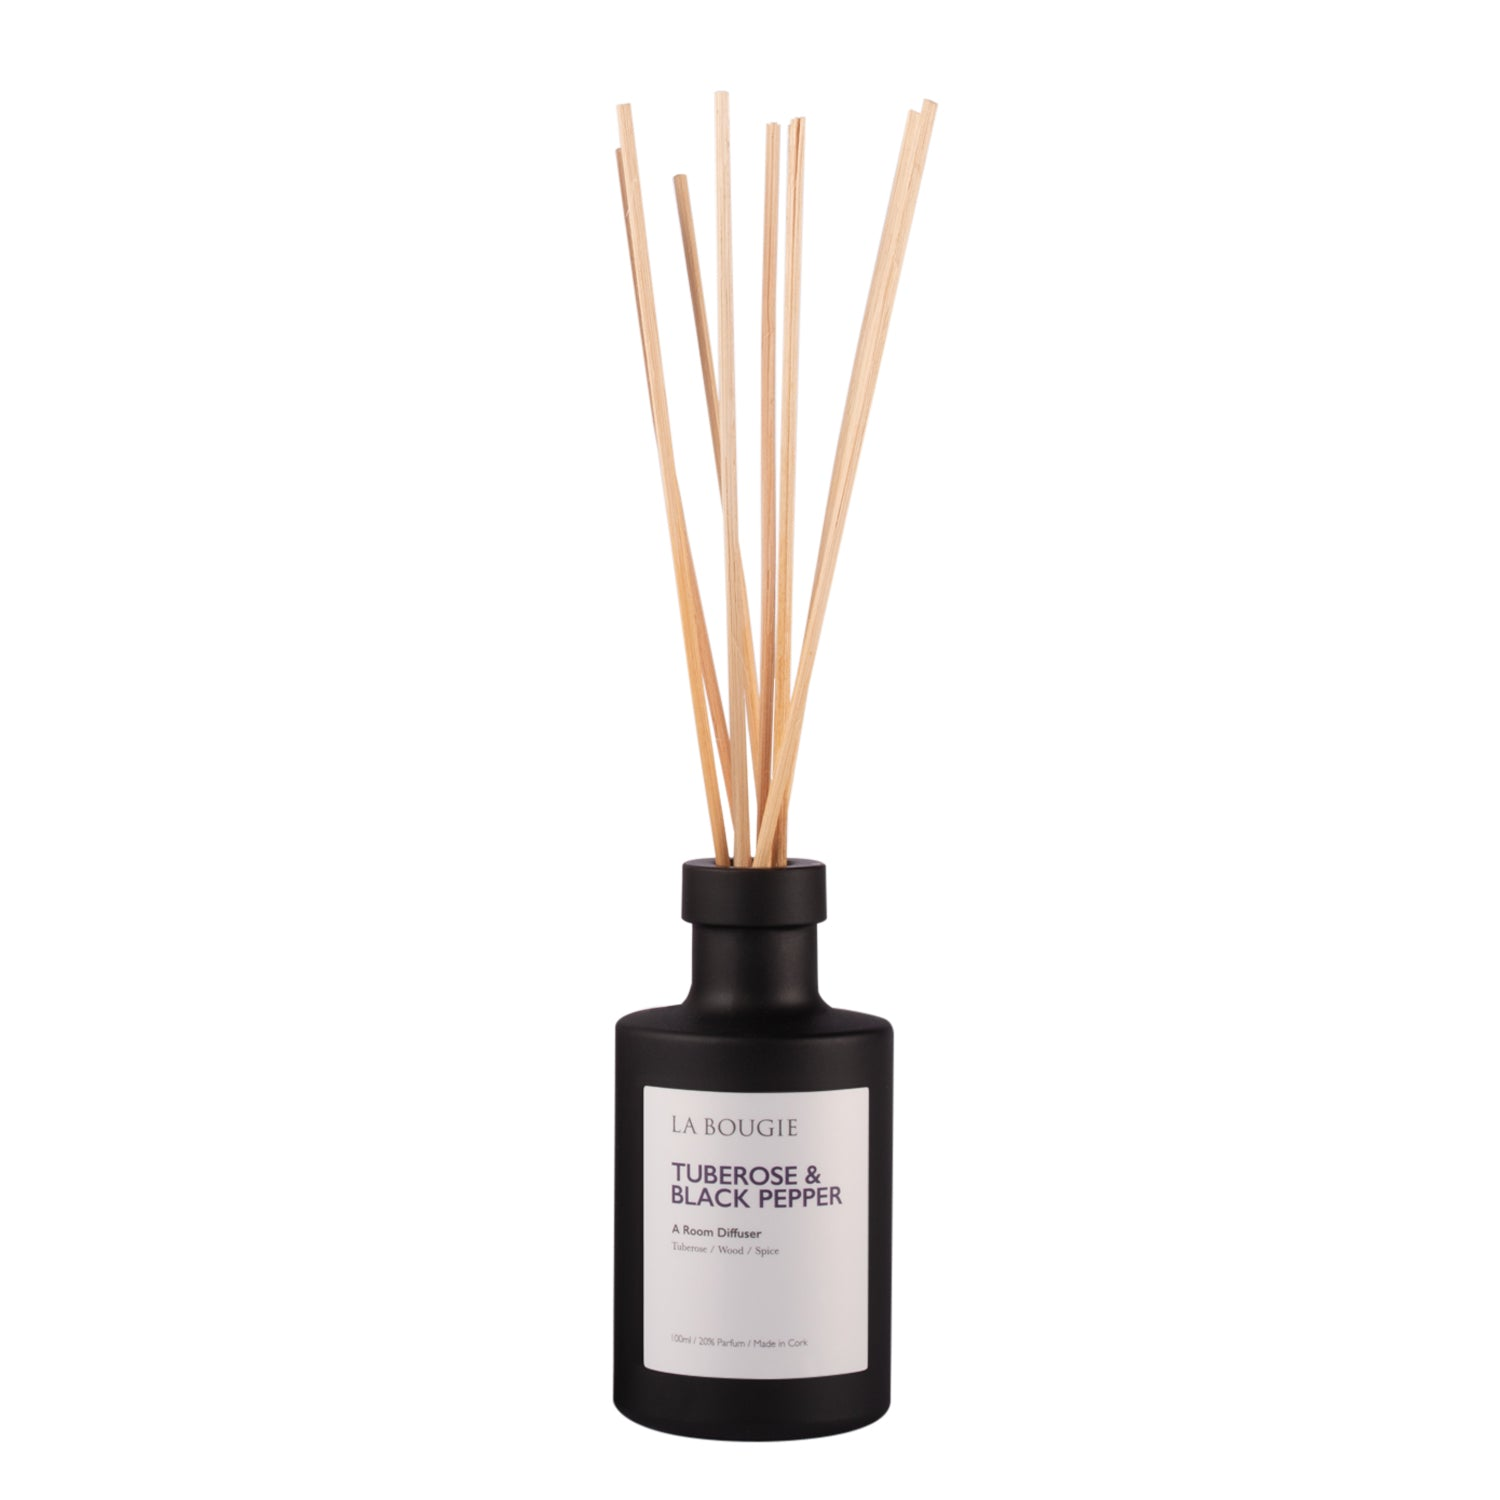 Tuberose and Black Pepper Diffuser